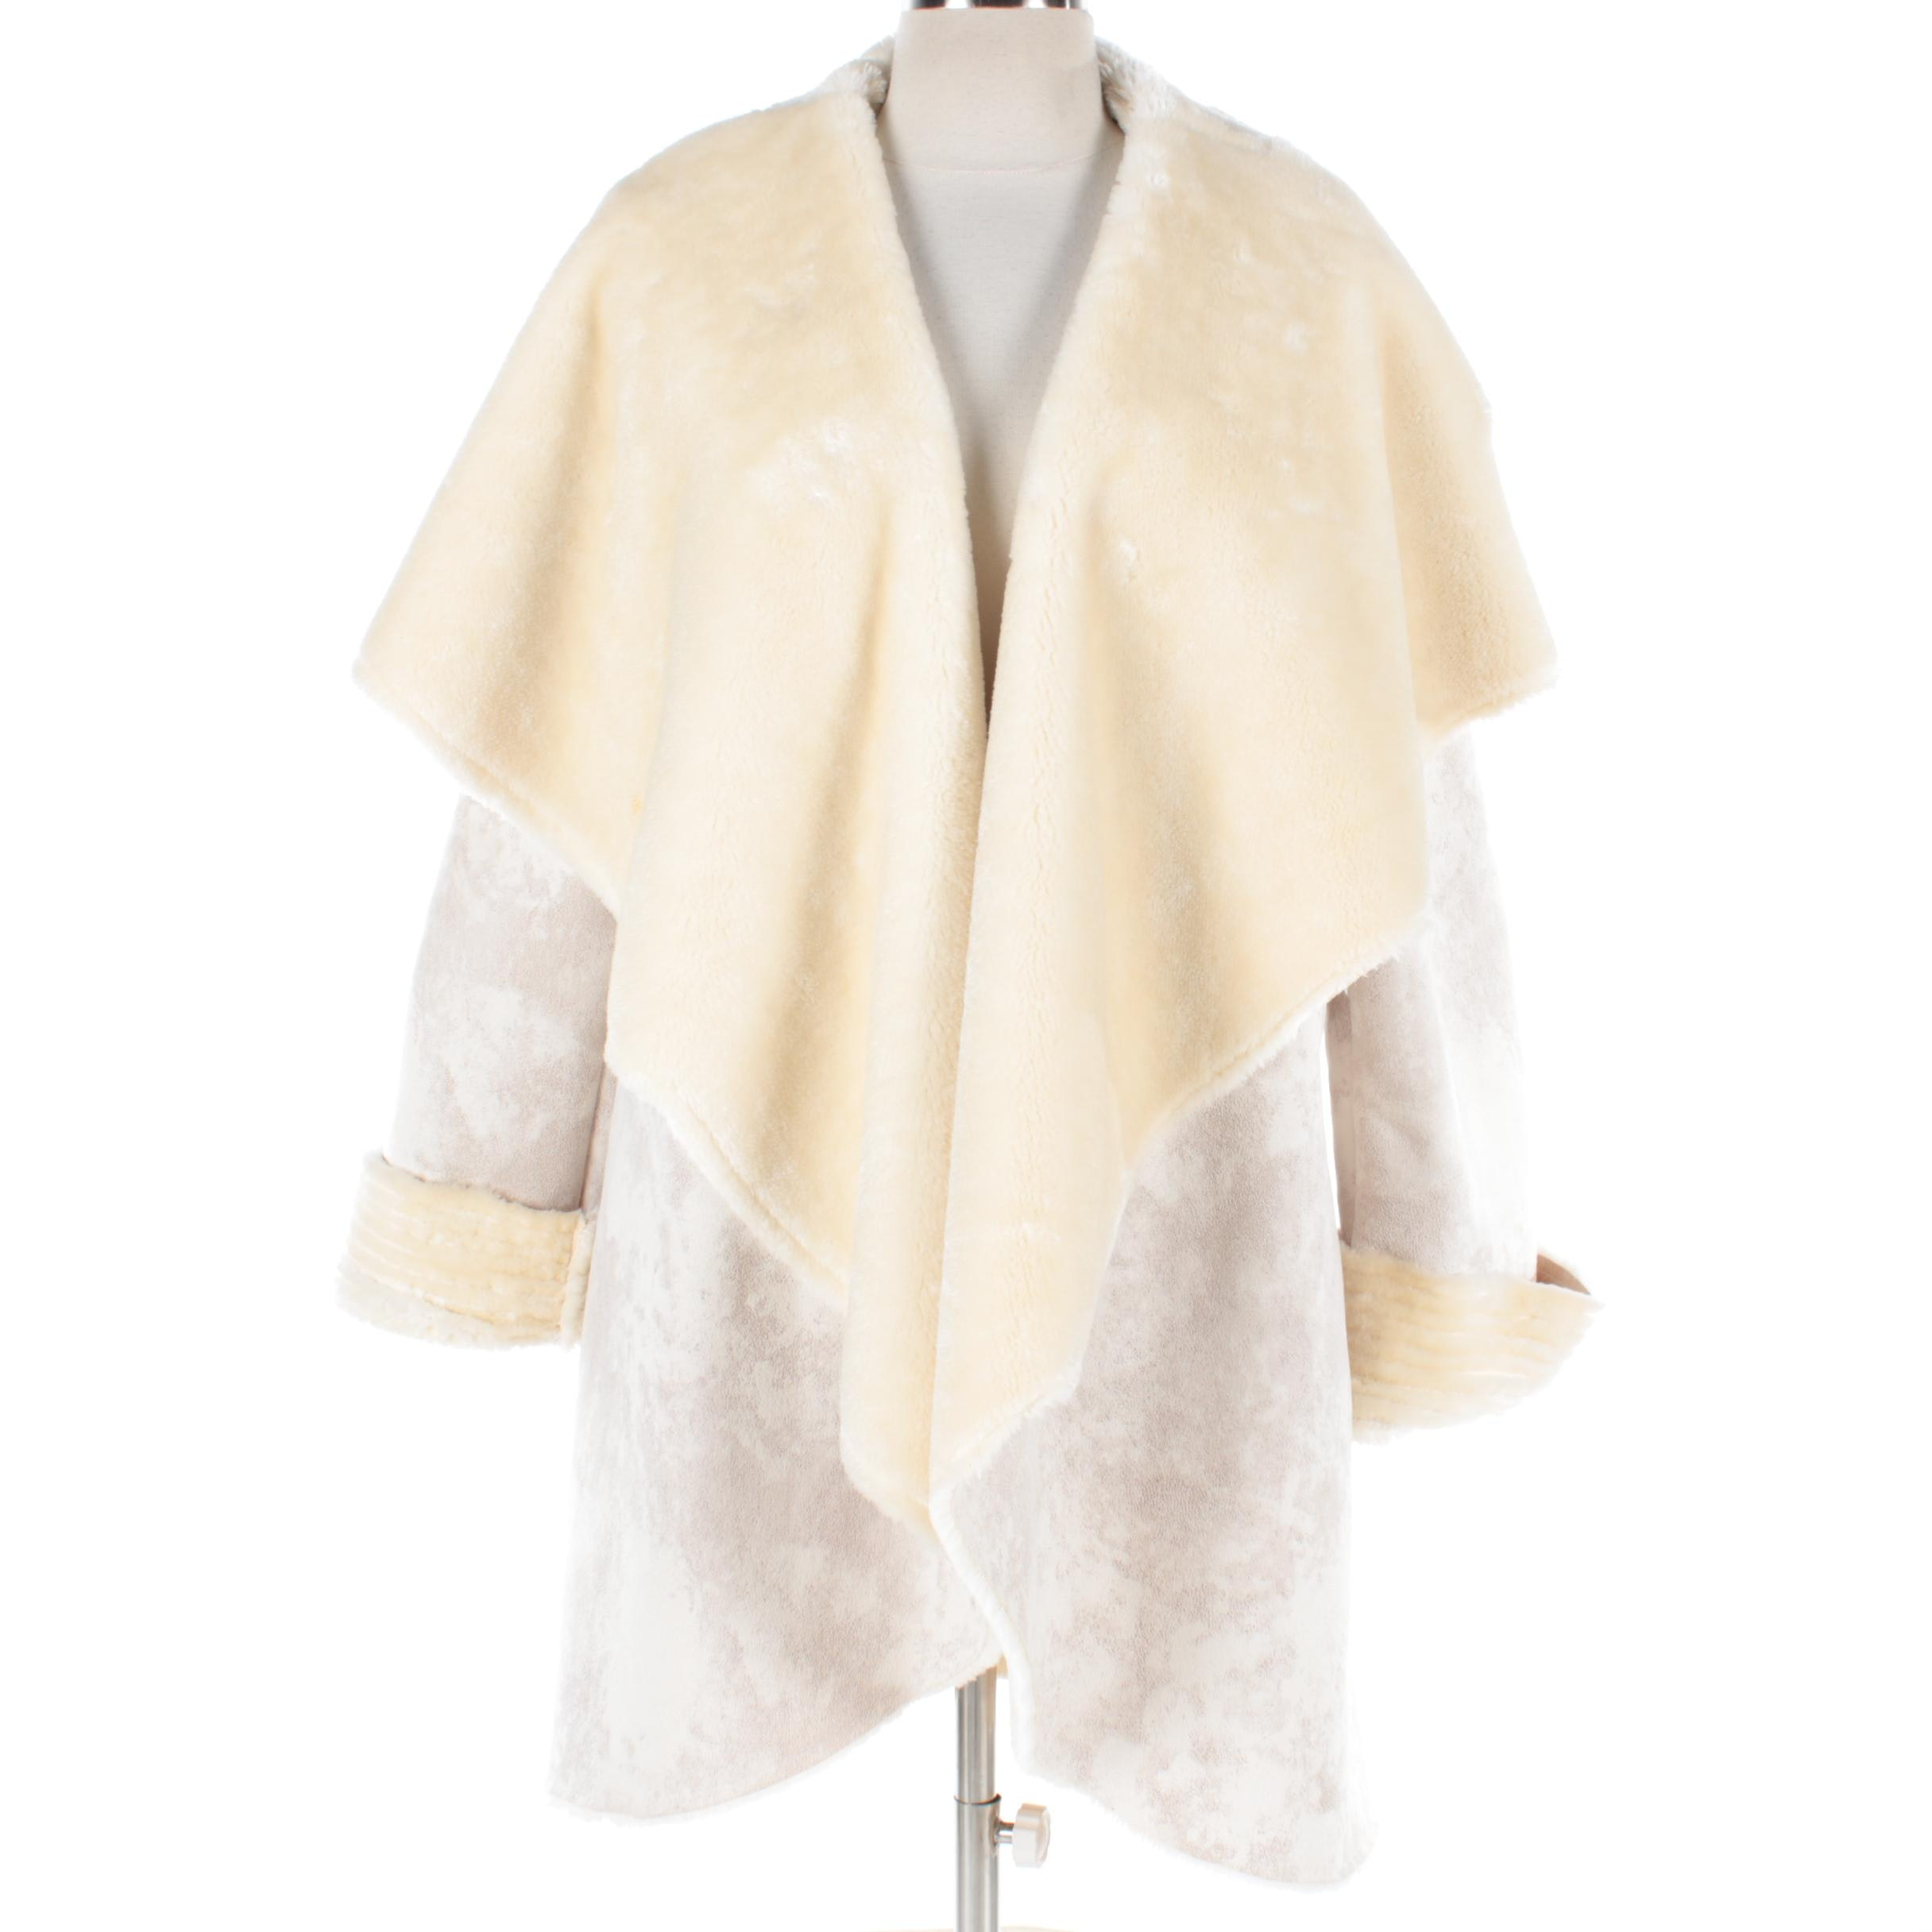 Women's Shawl Collar Suede Jacket with Faux Fur Lining